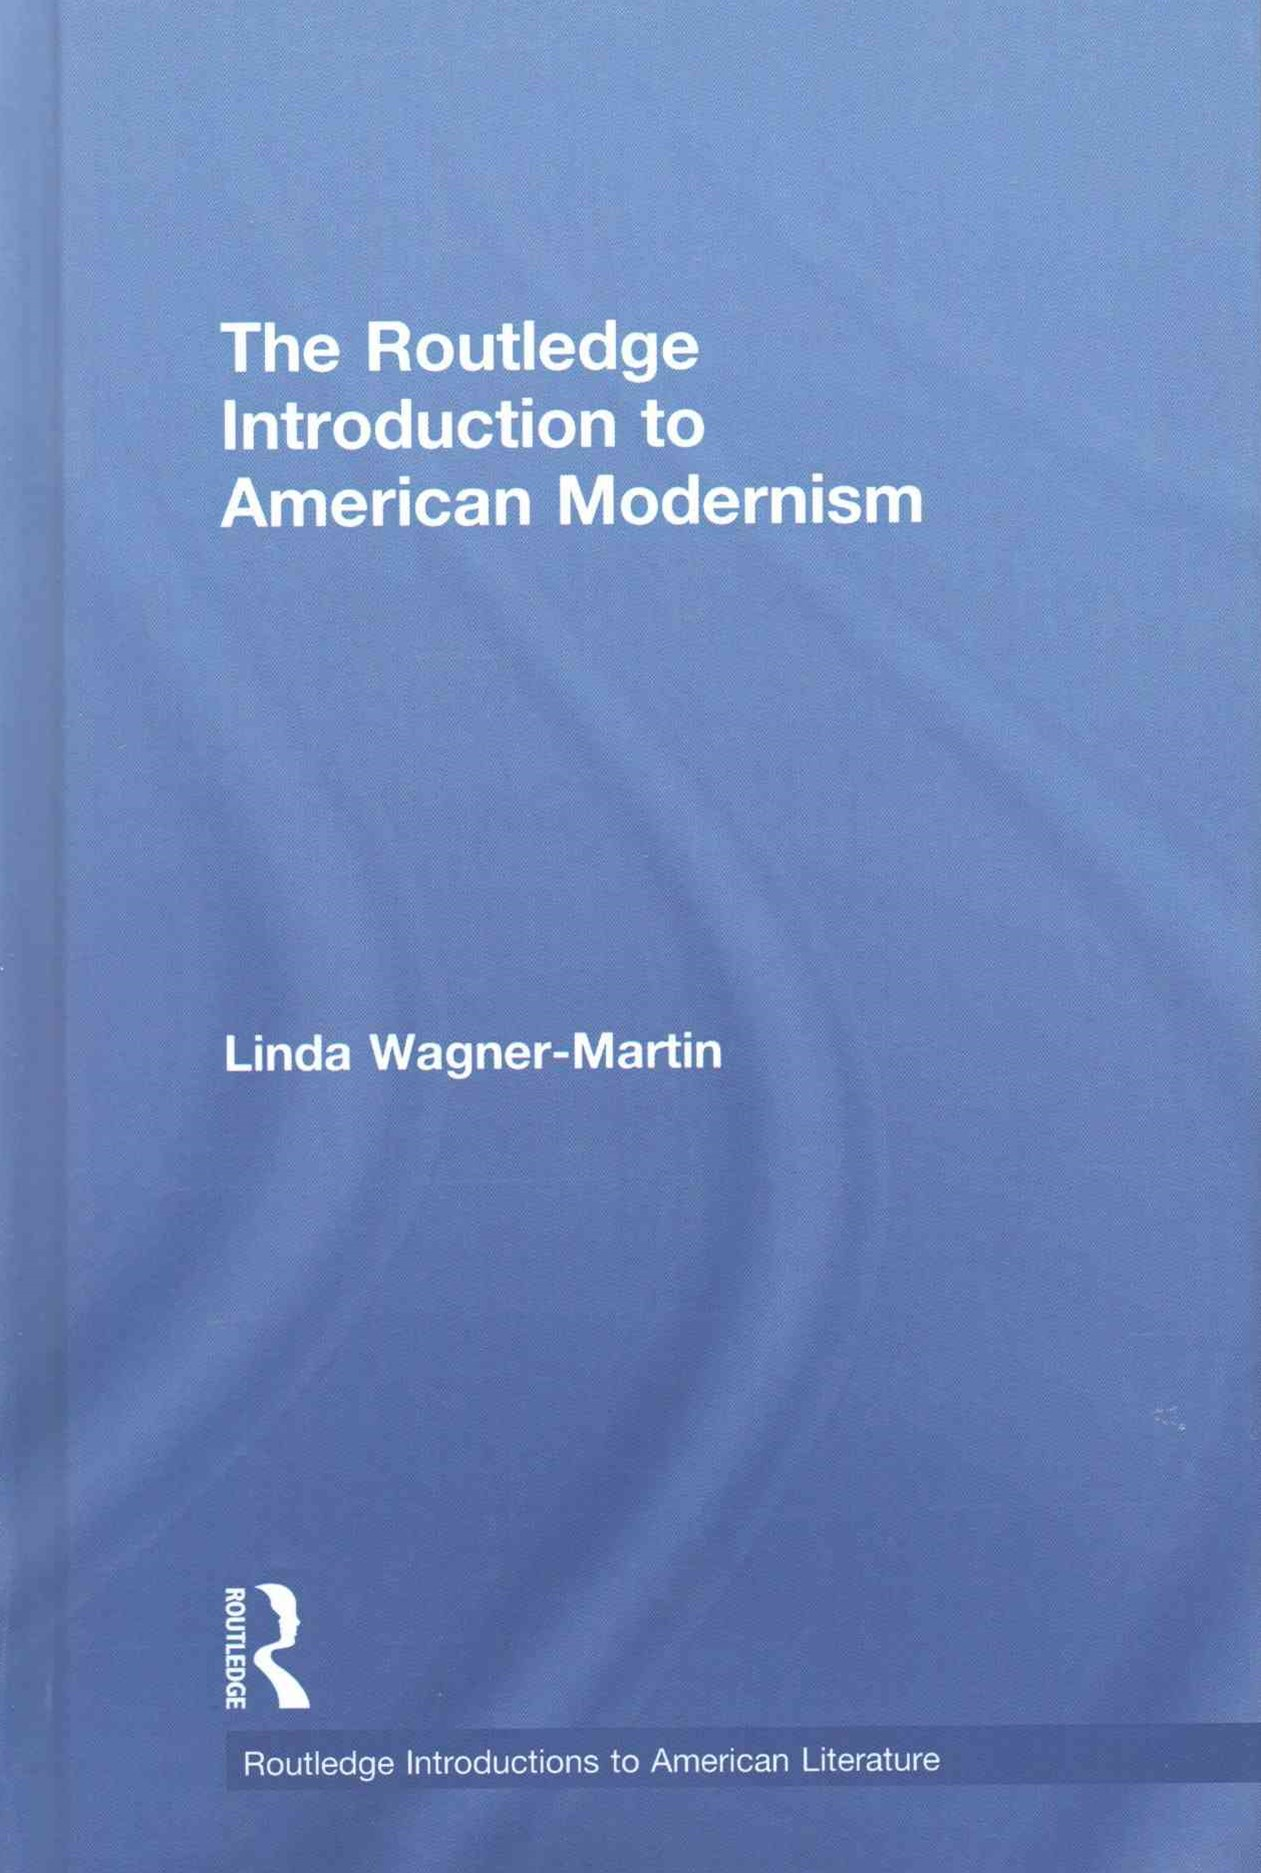 Routledge Introduction to American Modernism